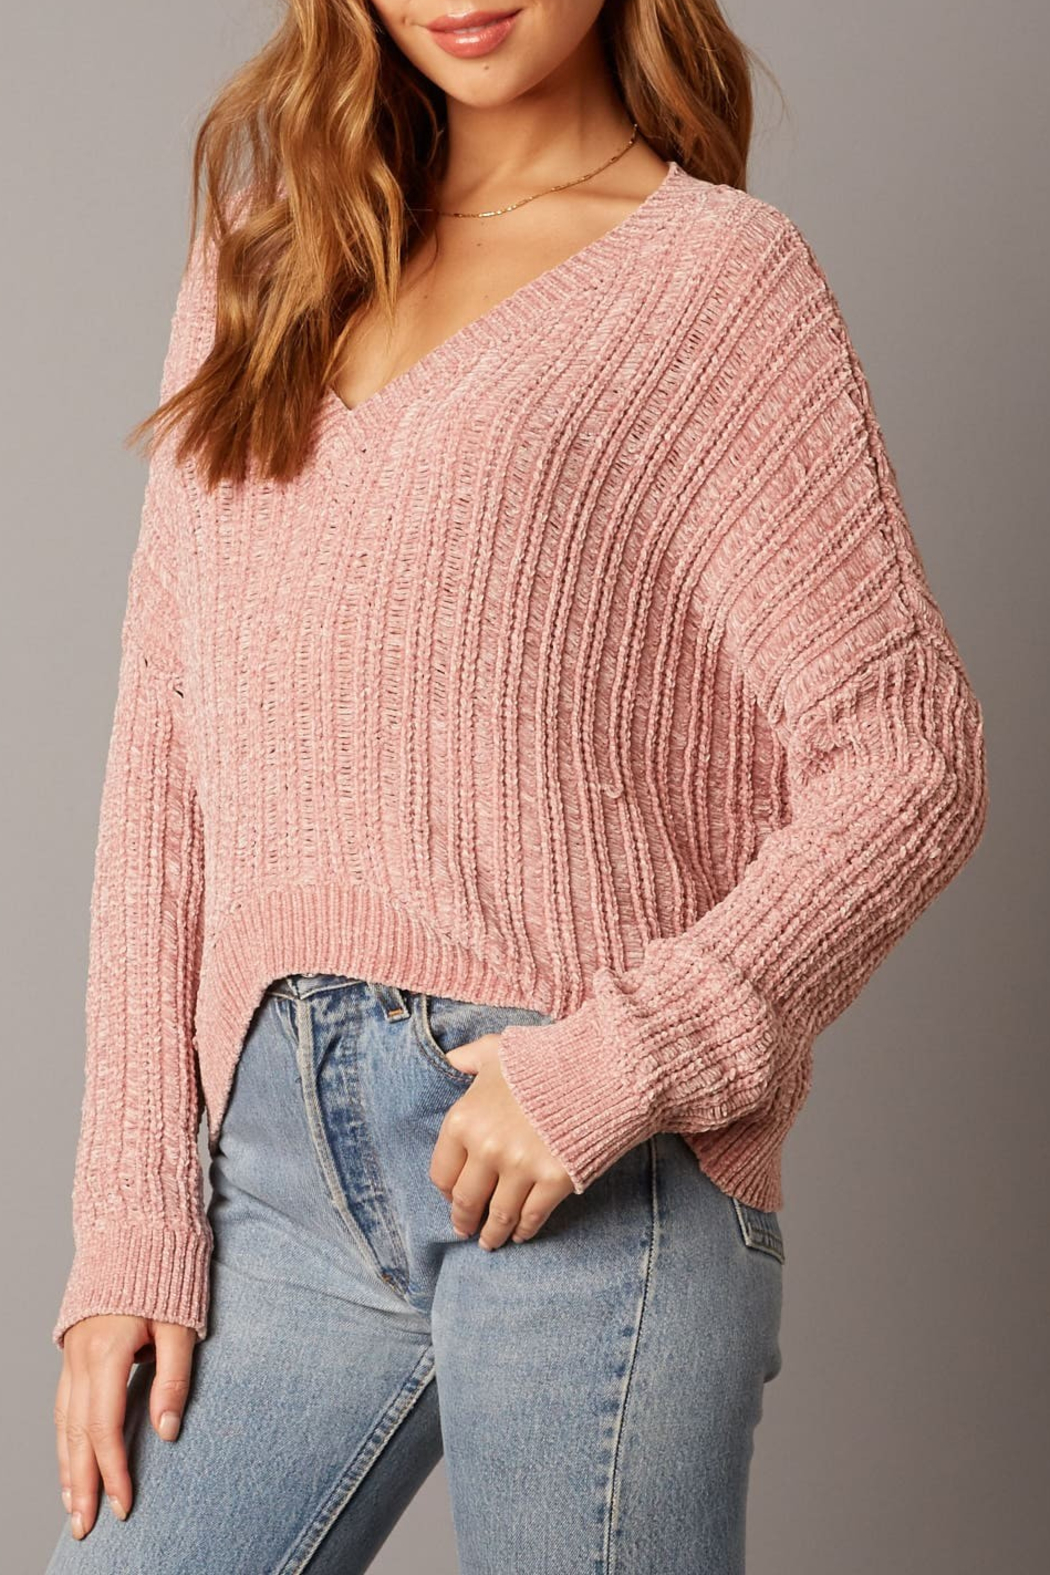 Cotton Candy LA Ribbed Sweater - Front Full Image